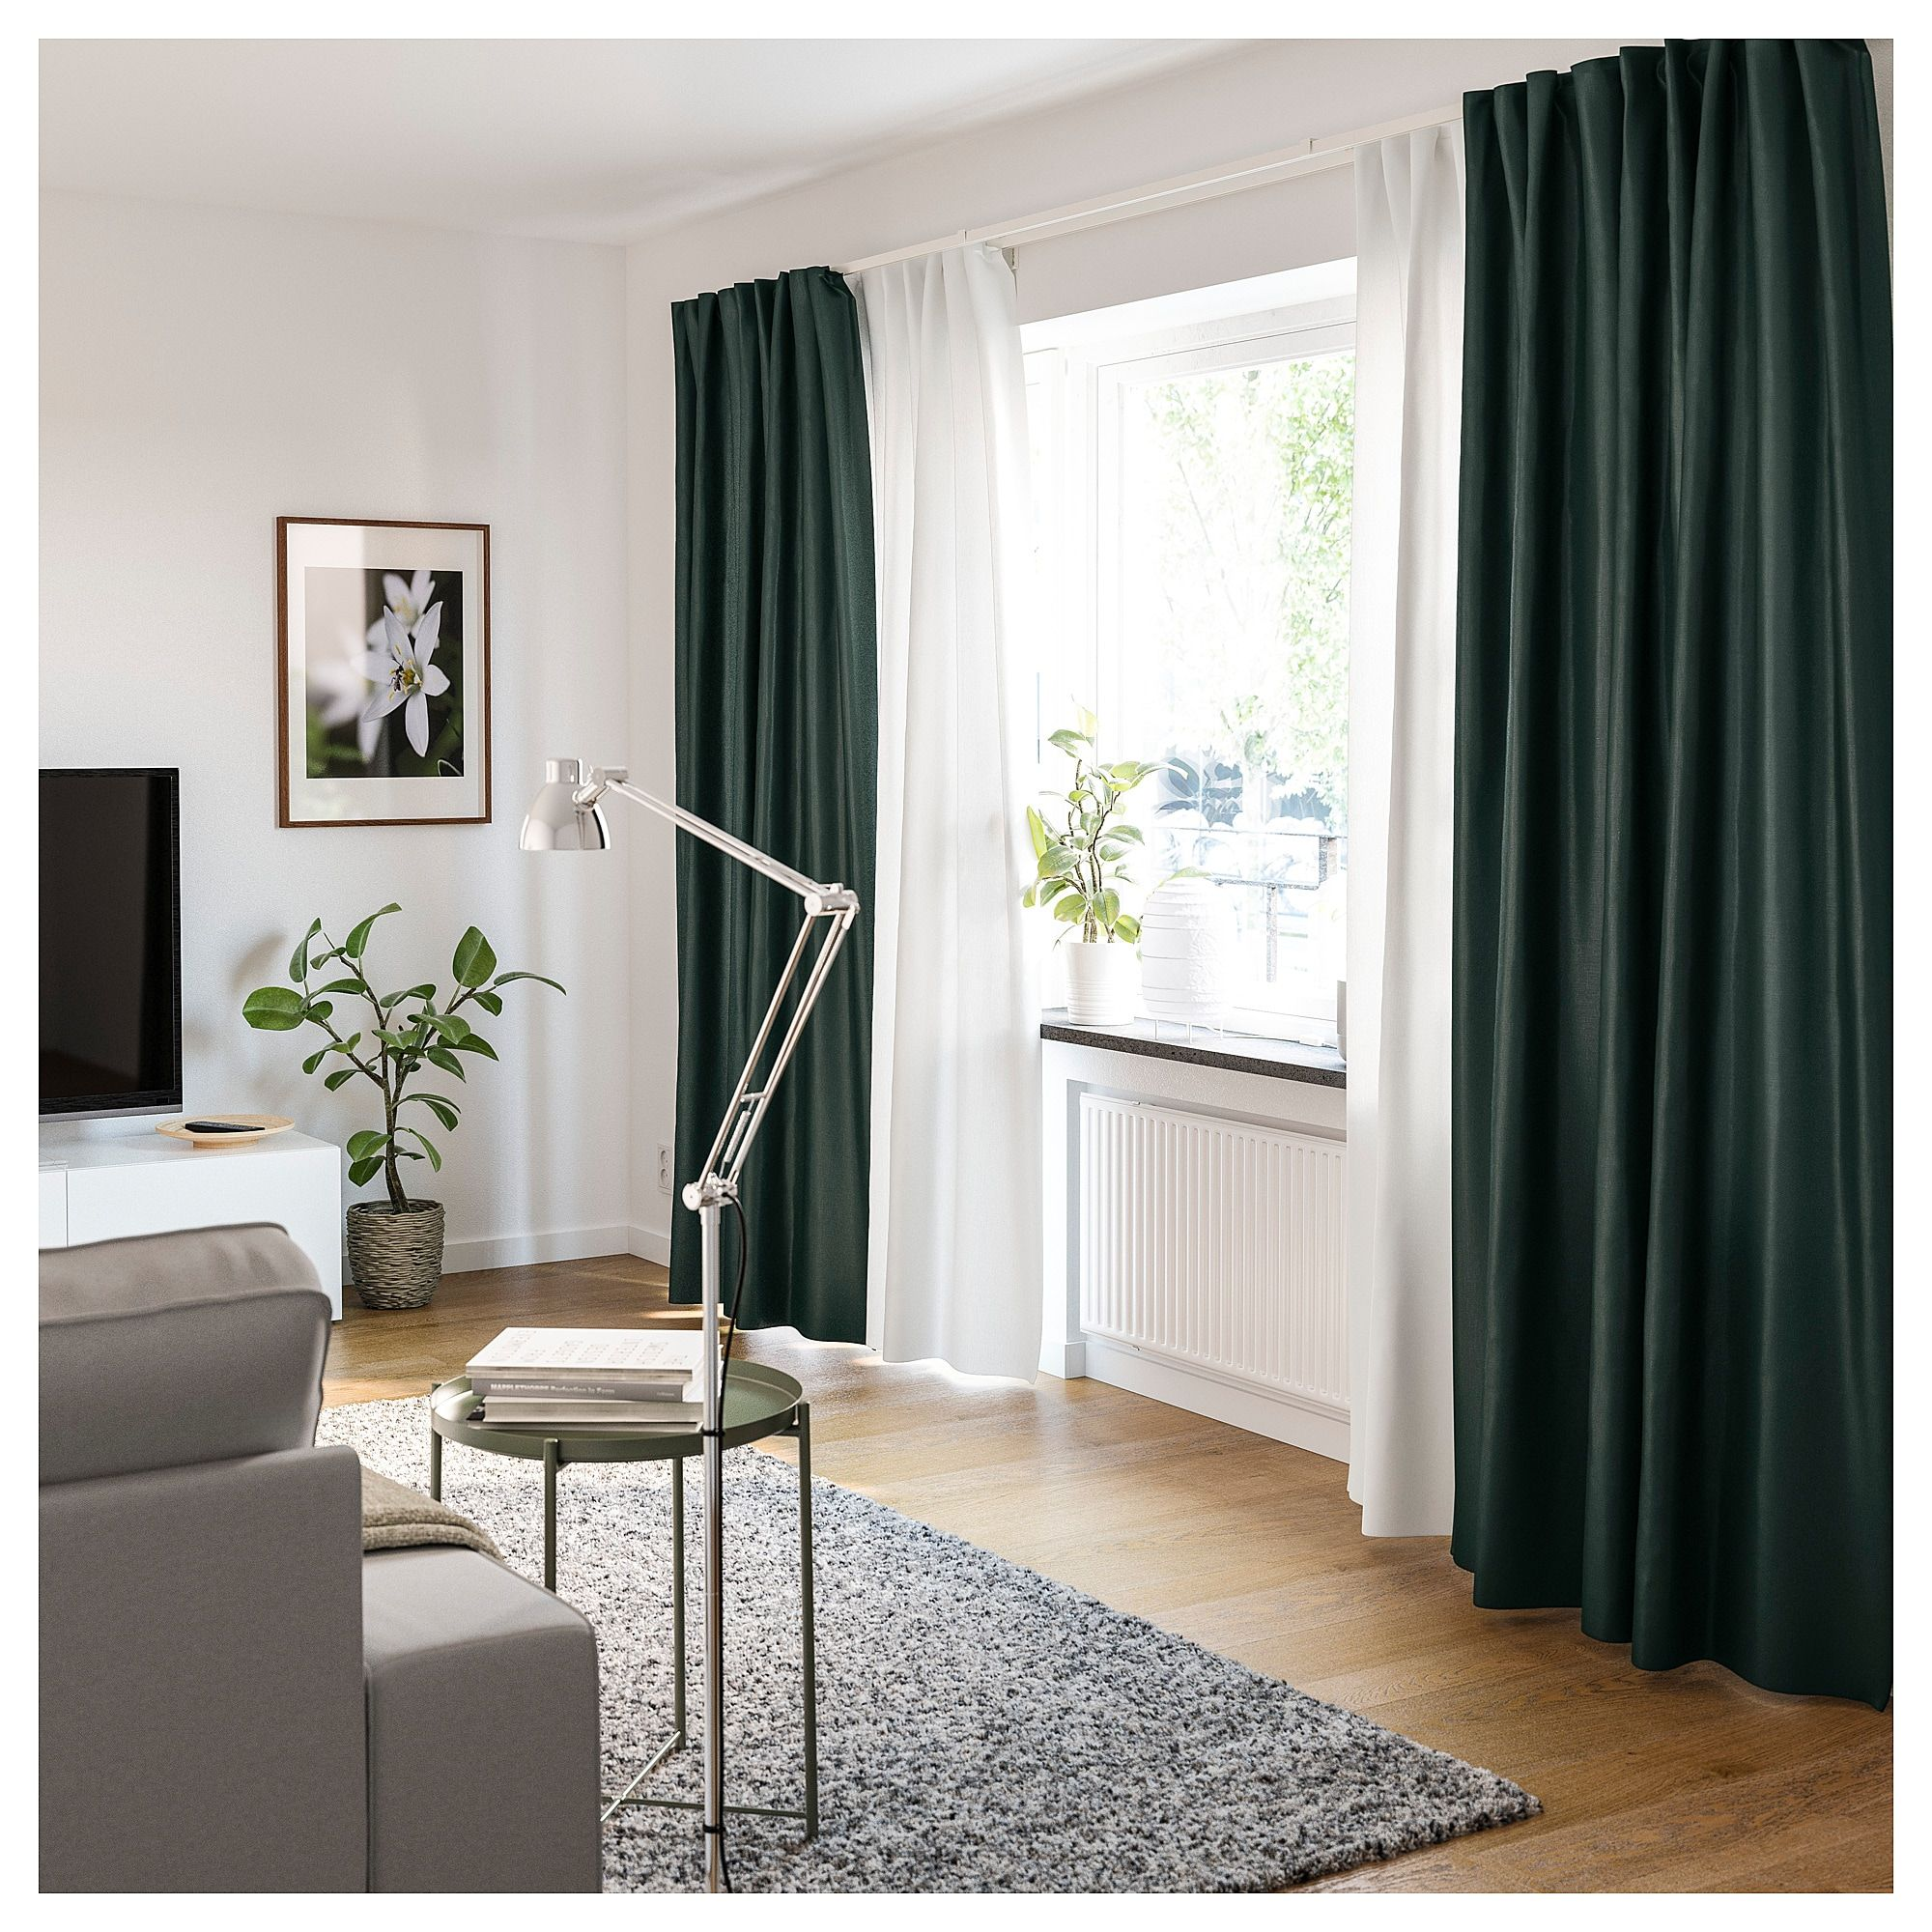 Vidga Two Track Set Ikea Green Curtains Living Room Fresh Living Room Curtains Living Room